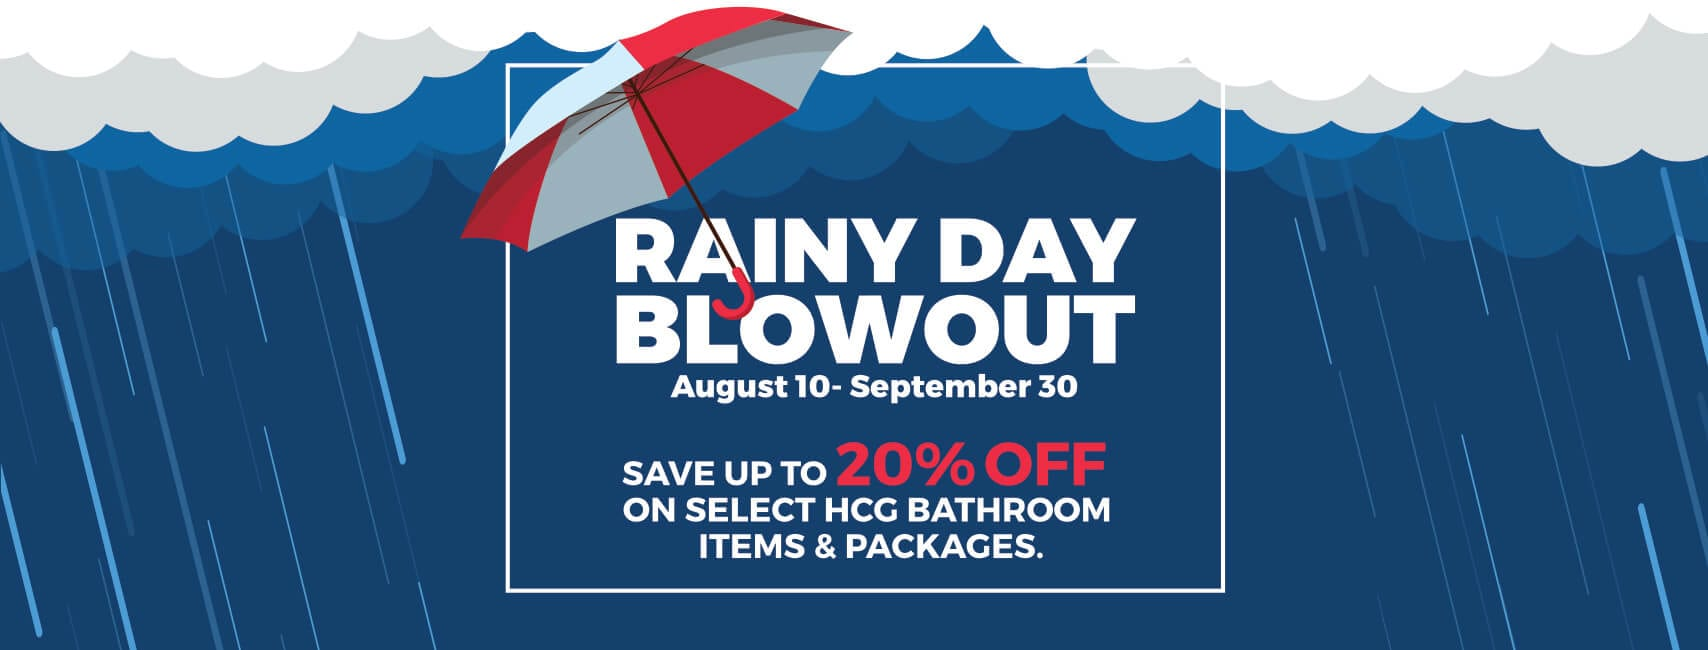 HCG Rainy Day Blowout